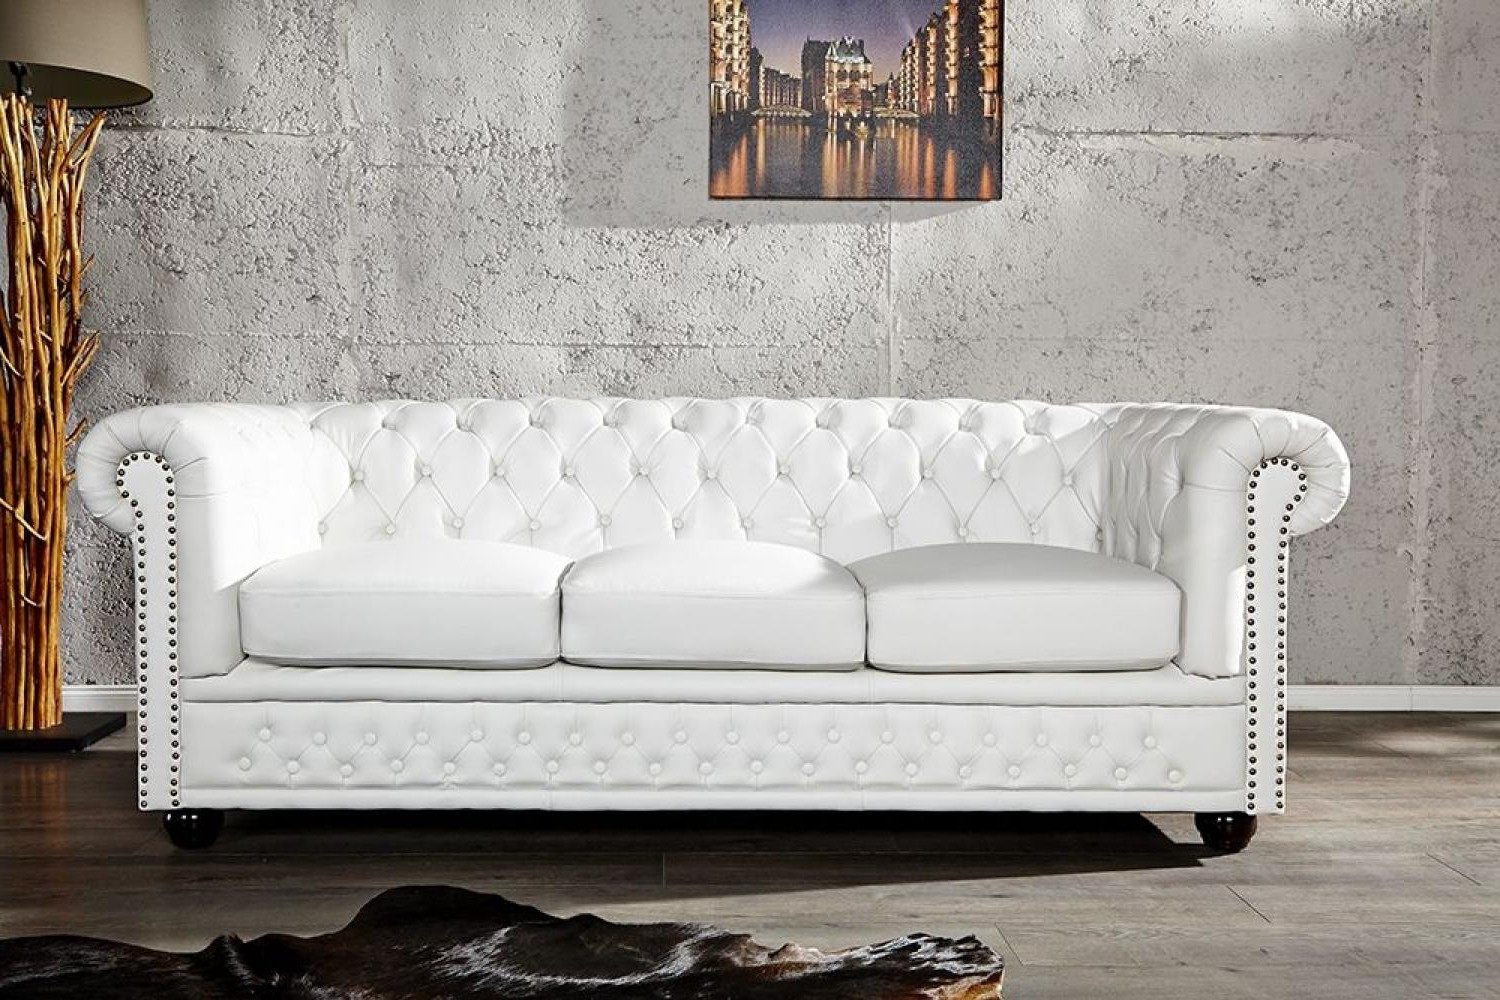 Canape chesterfield cuir blanc 3 places canap id es de d coration de mai - Canape cuir blanc 3 places ...